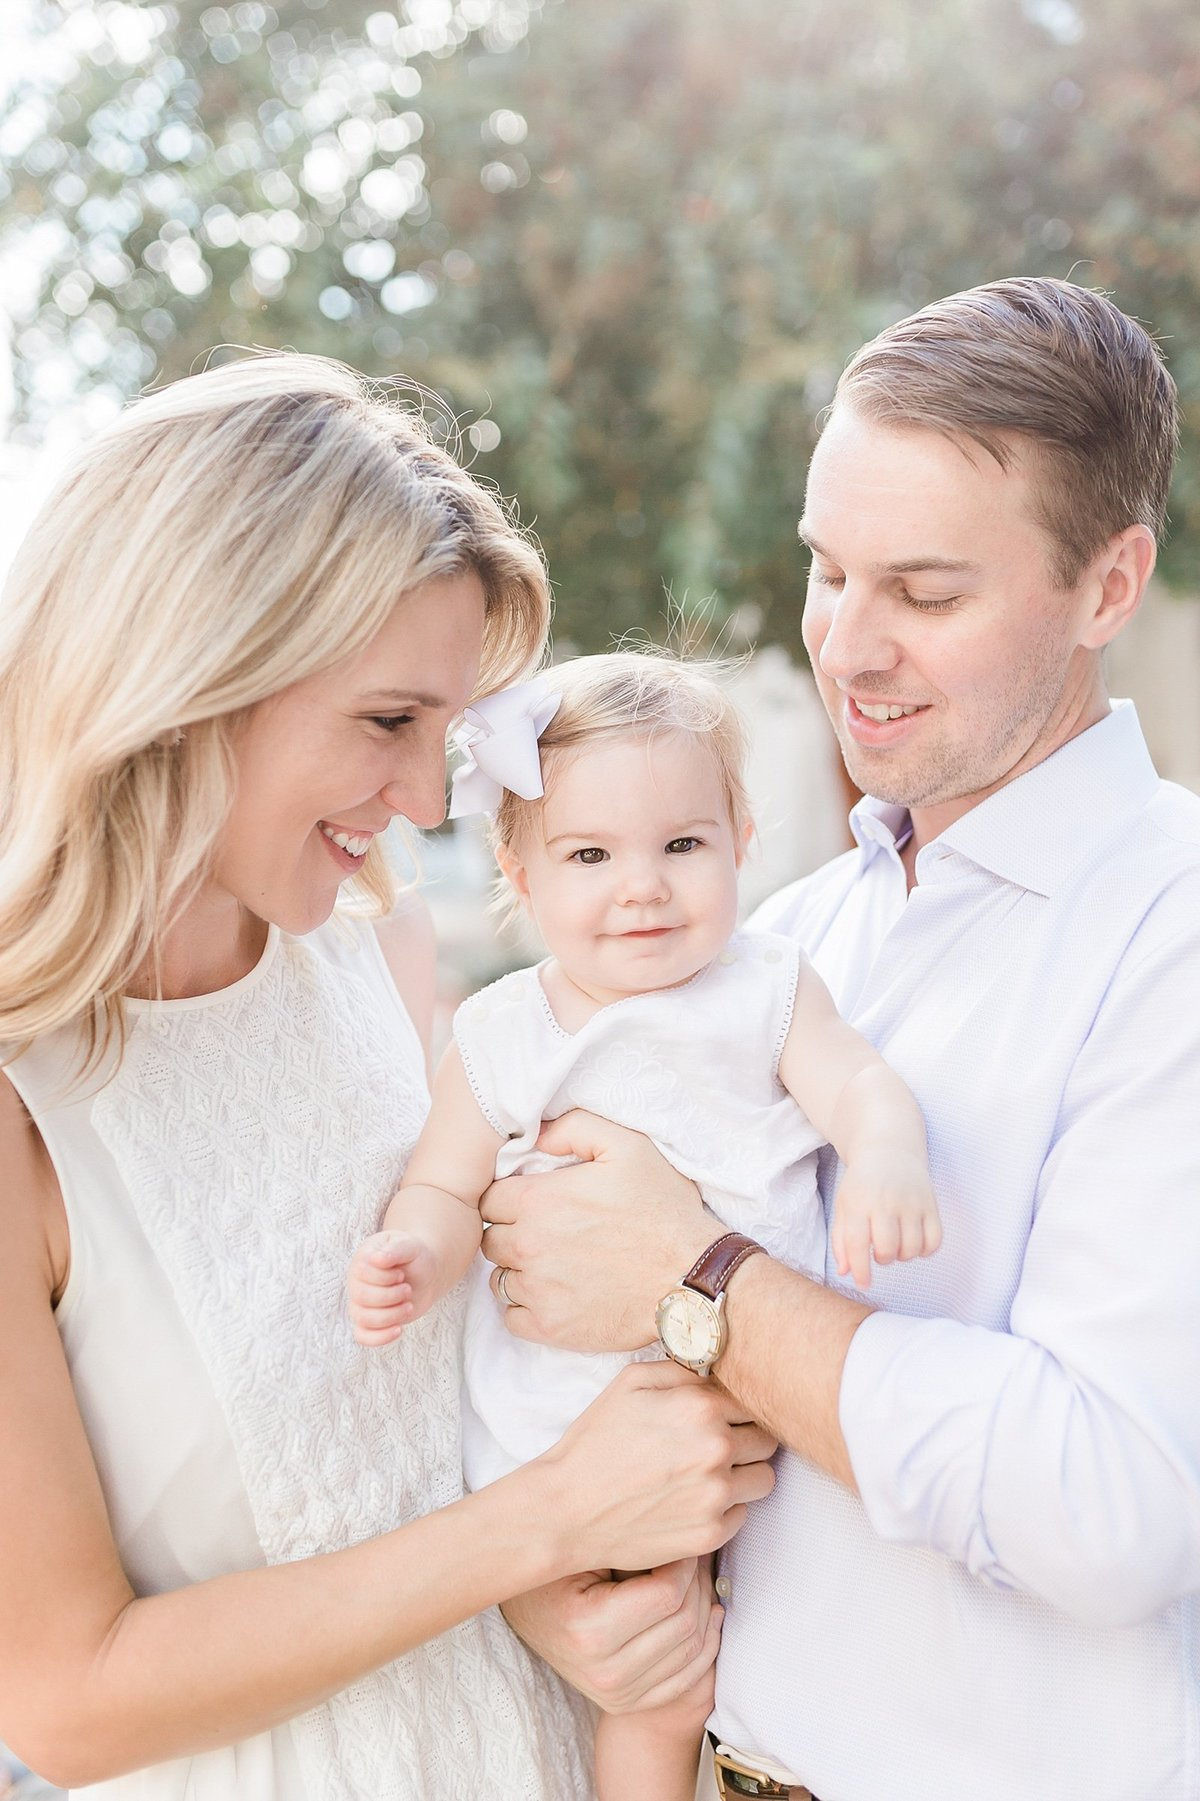 Charleston-Family-Photographer-Downtown-Charleston-Family-Session-Charleston-Milestone-Photographer-Charleston-Family-Photography-7